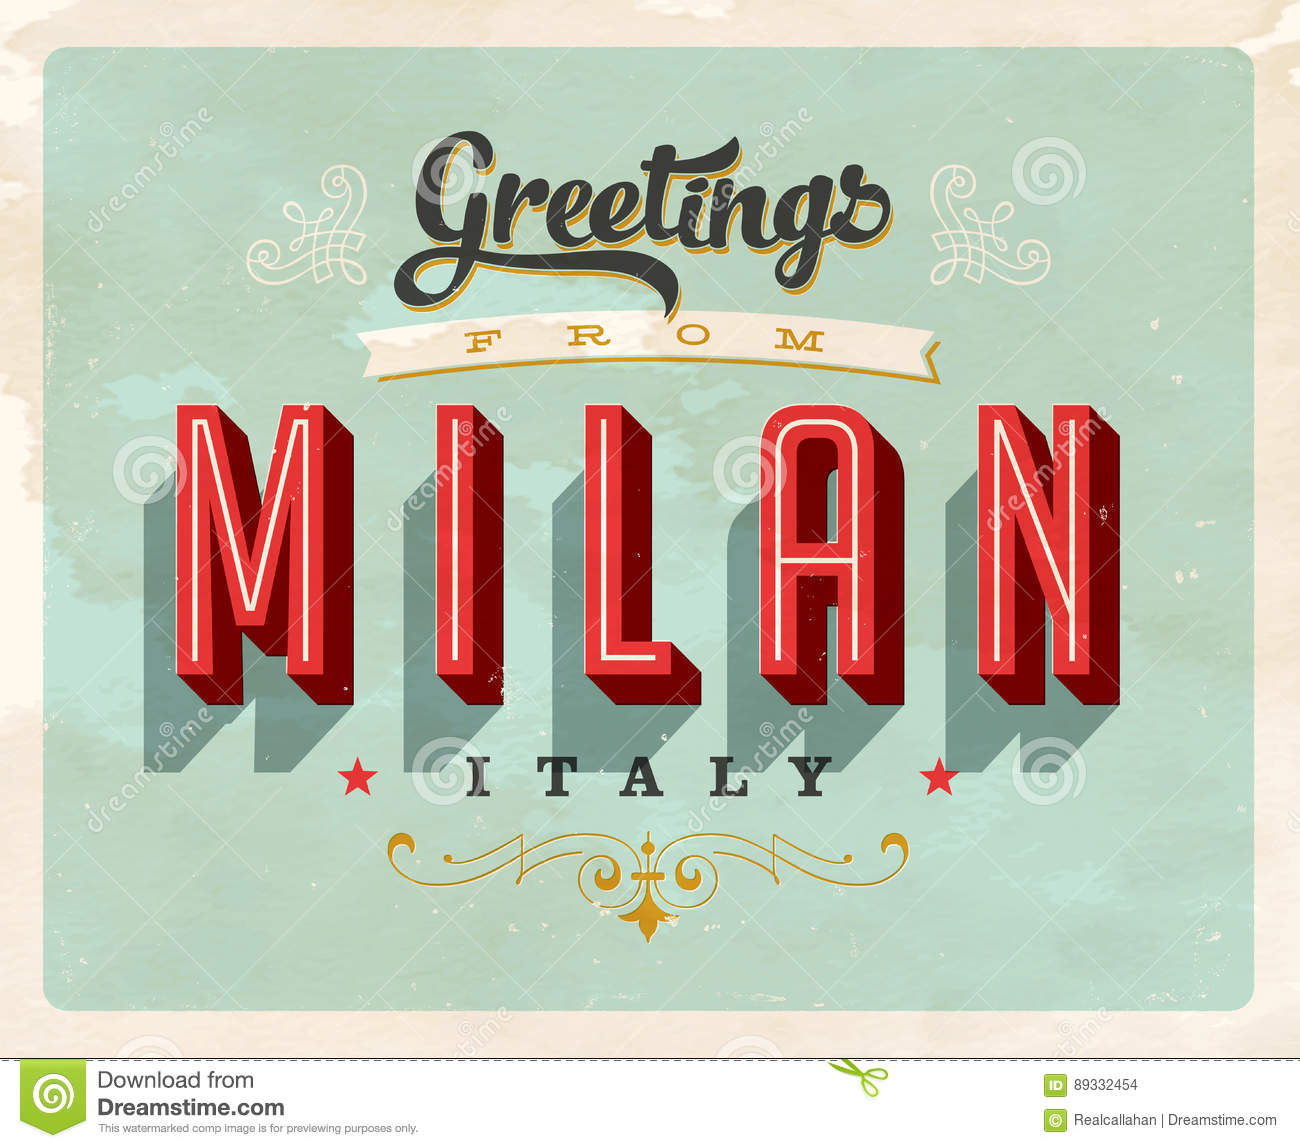 Vintage greetings from milan italy vacation card stock vector download vintage greetings from milan italy vacation card stock vector illustration of postcard m4hsunfo